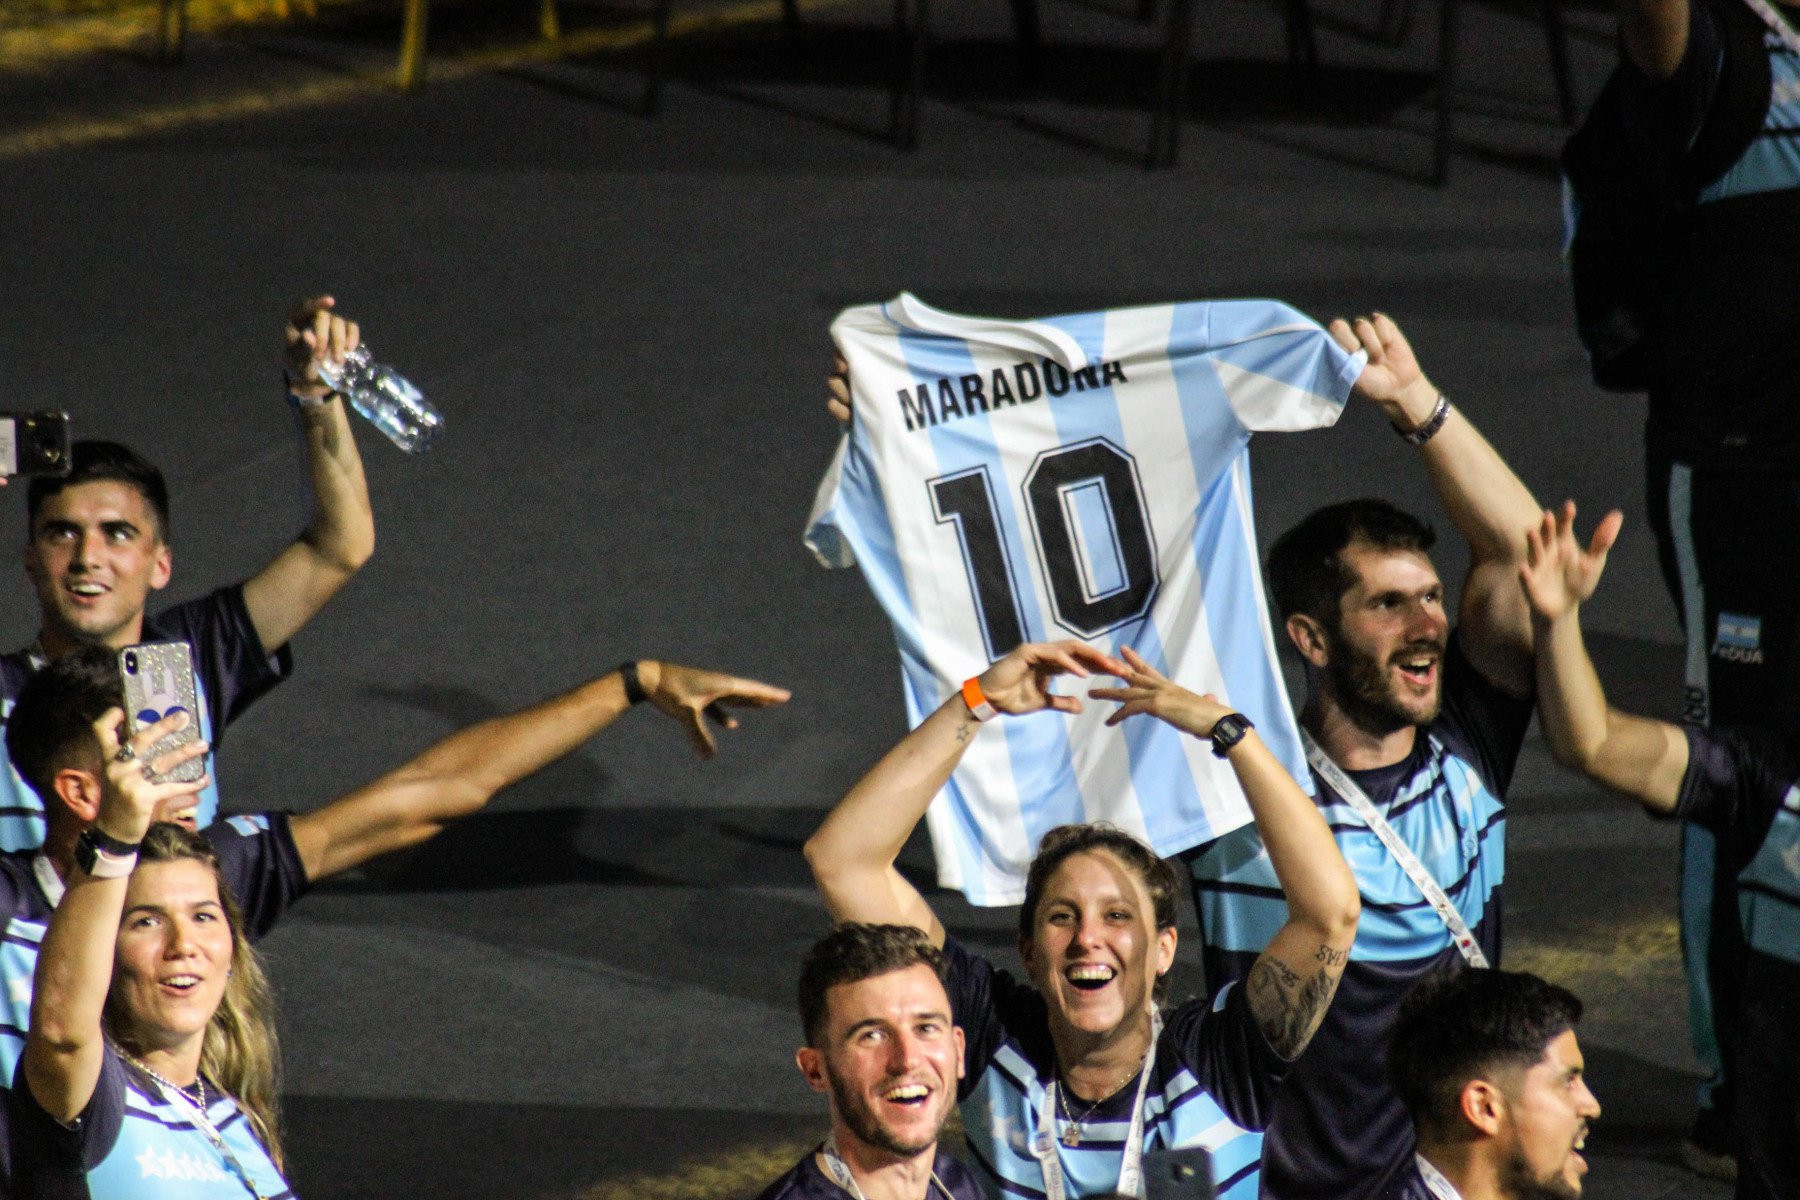 The team from Argentina waved a Maradona jersey and earned a huge reception during the Opening Ceremony of the Summer Universiade in Naples on Wednesday ©Naples 2019